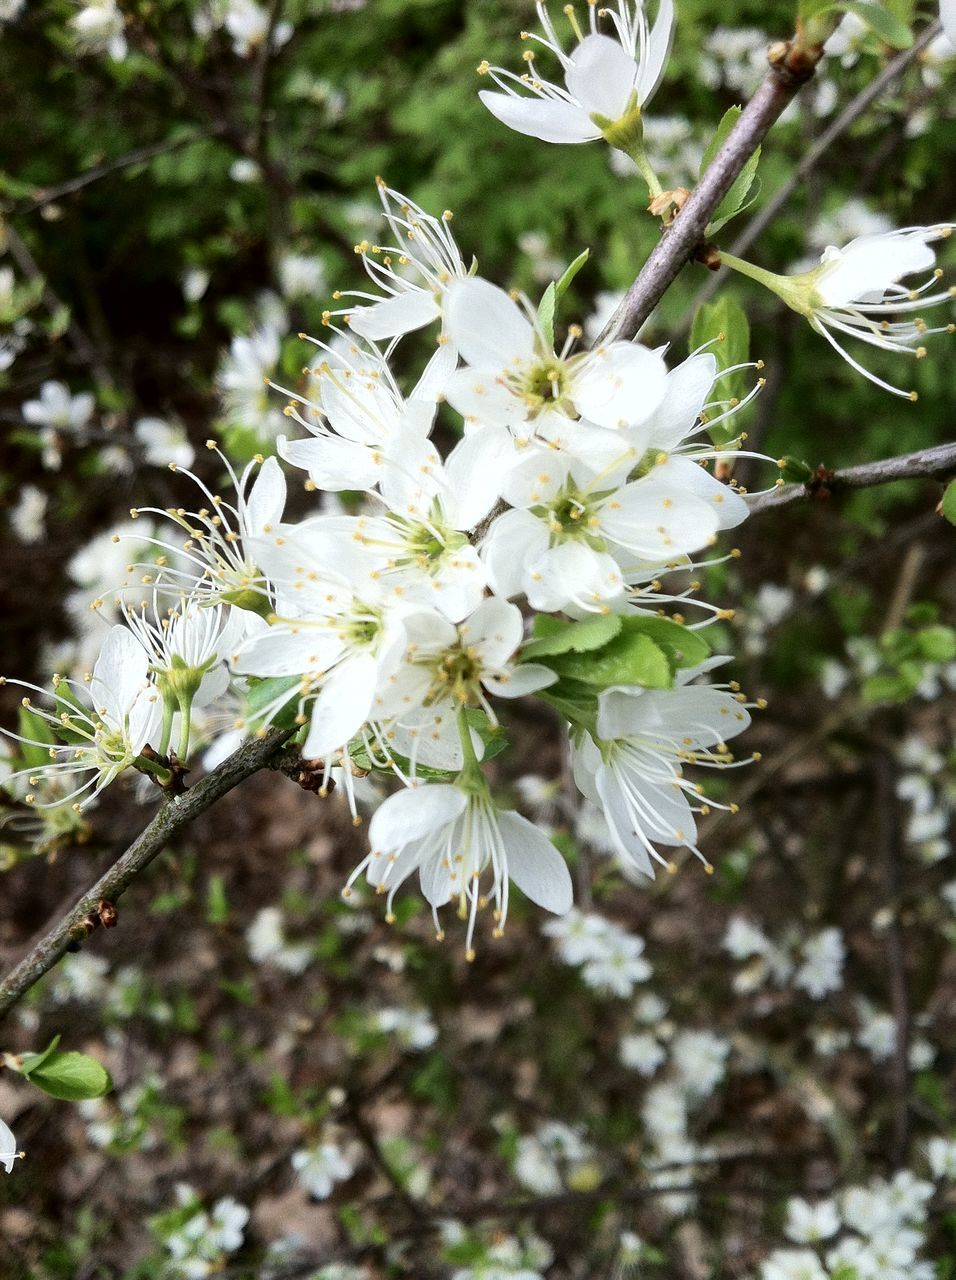 flower, blossom, white color, tree, growth, nature, apple blossom, apple tree, fragility, orchard, springtime, branch, botany, beauty in nature, spring, freshness, no people, petal, stamen, day, blooming, outdoors, close-up, flower head